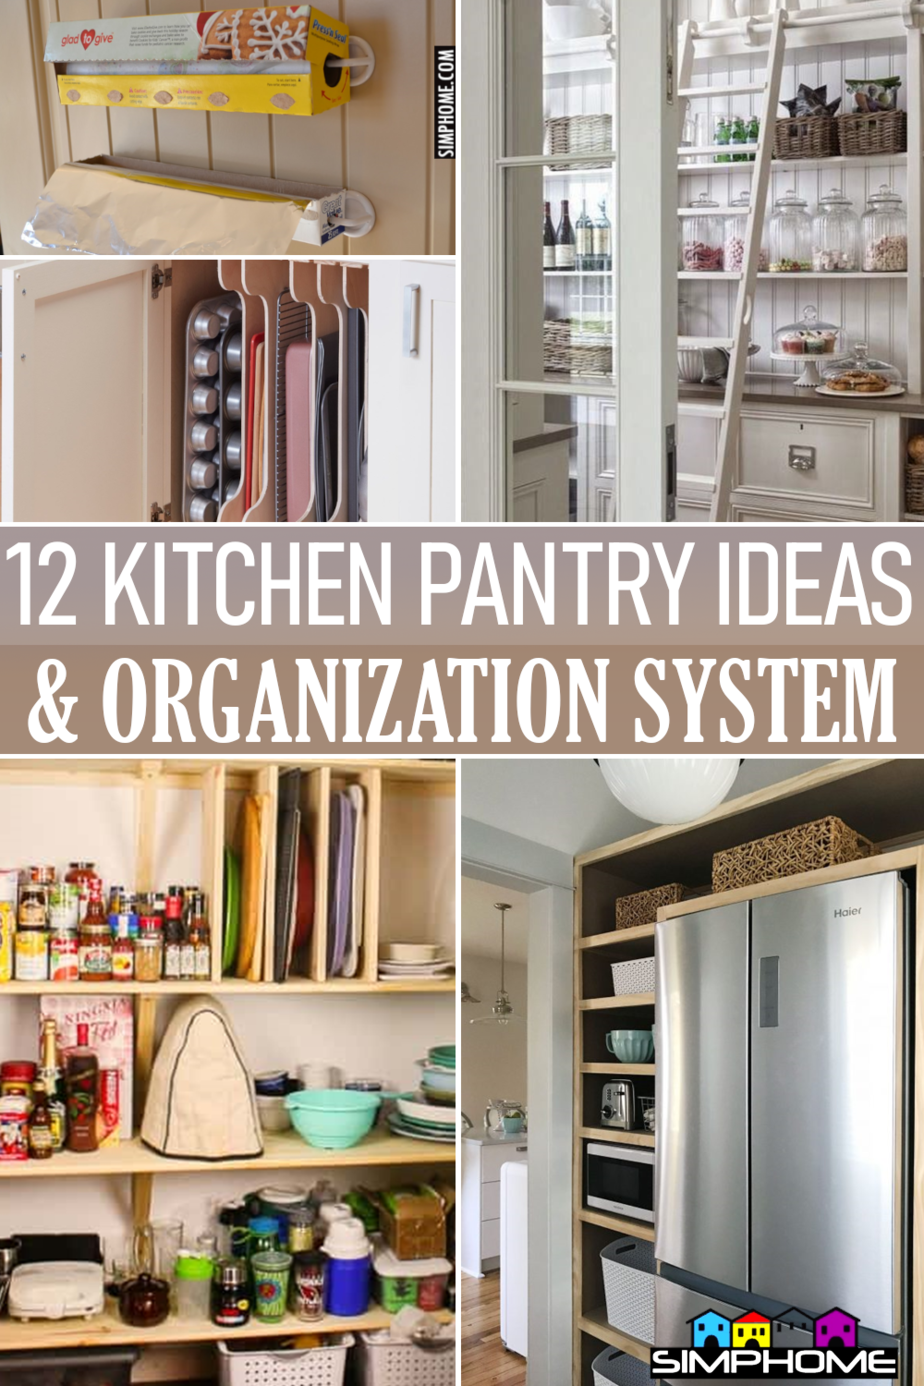 12 Kitchen Pantry Organization system via Simphome.comFeatured